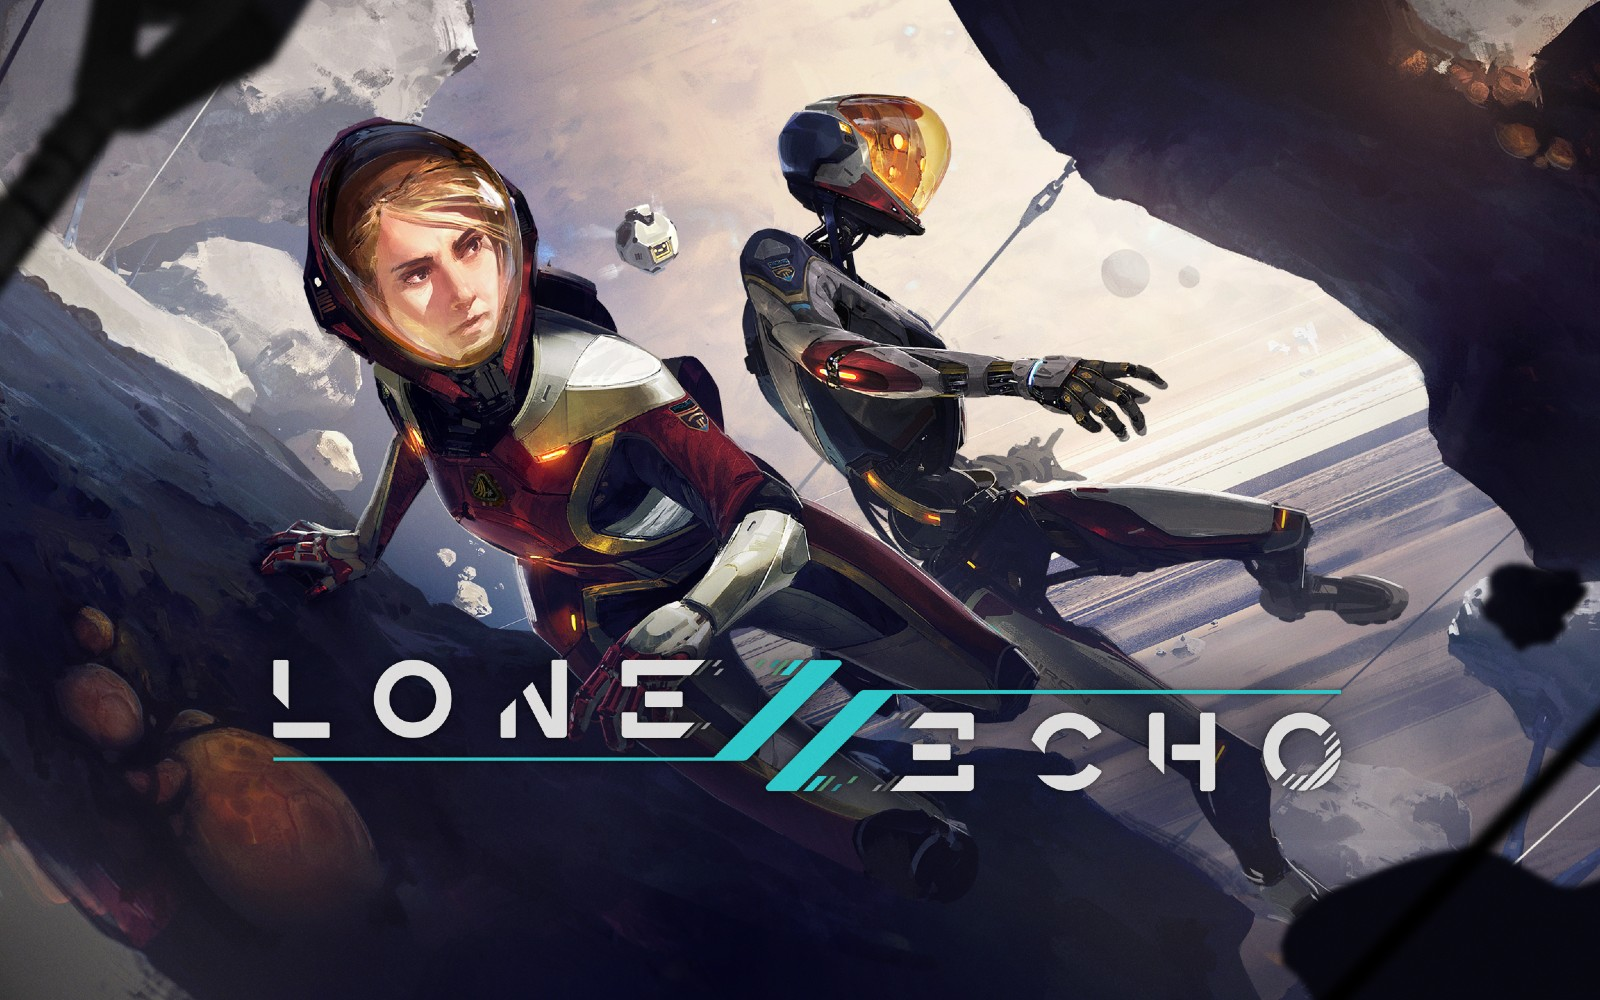 'Lone Echo II' heads to Oculus VR this summer - Engadget